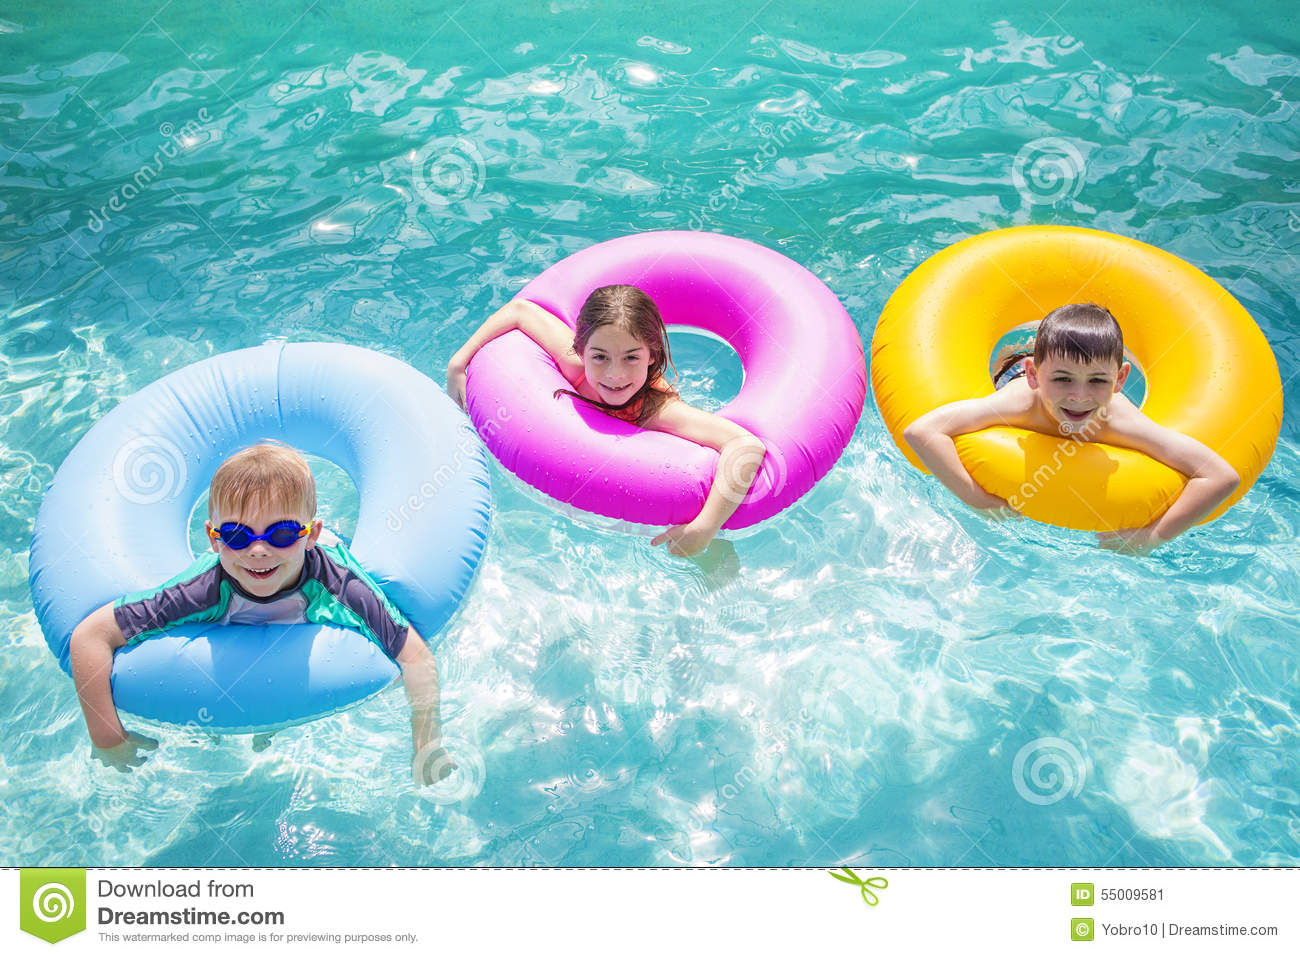 Group of cute kids playing on inflatable tubes in a for Cute pool pictures